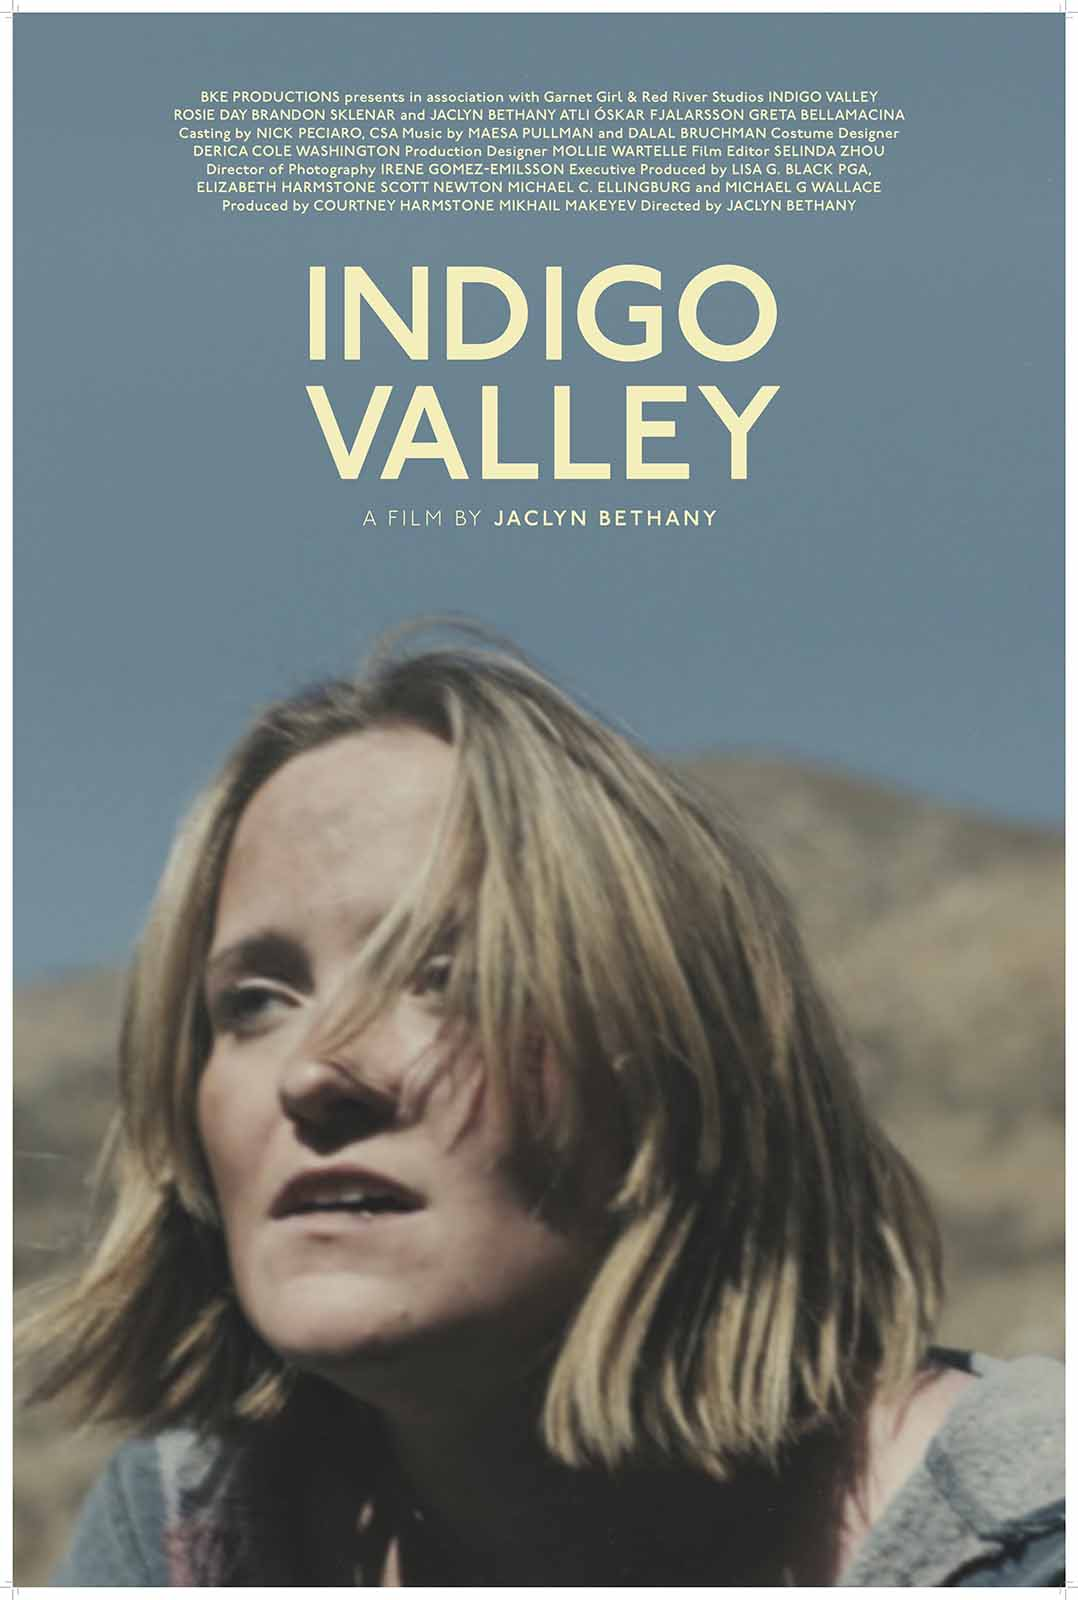 Jaclyn Bethany is telling diverse stories as a filmmaker. Her latest film, 'Indigo Valley', continues her trend of innovative filmmaking.